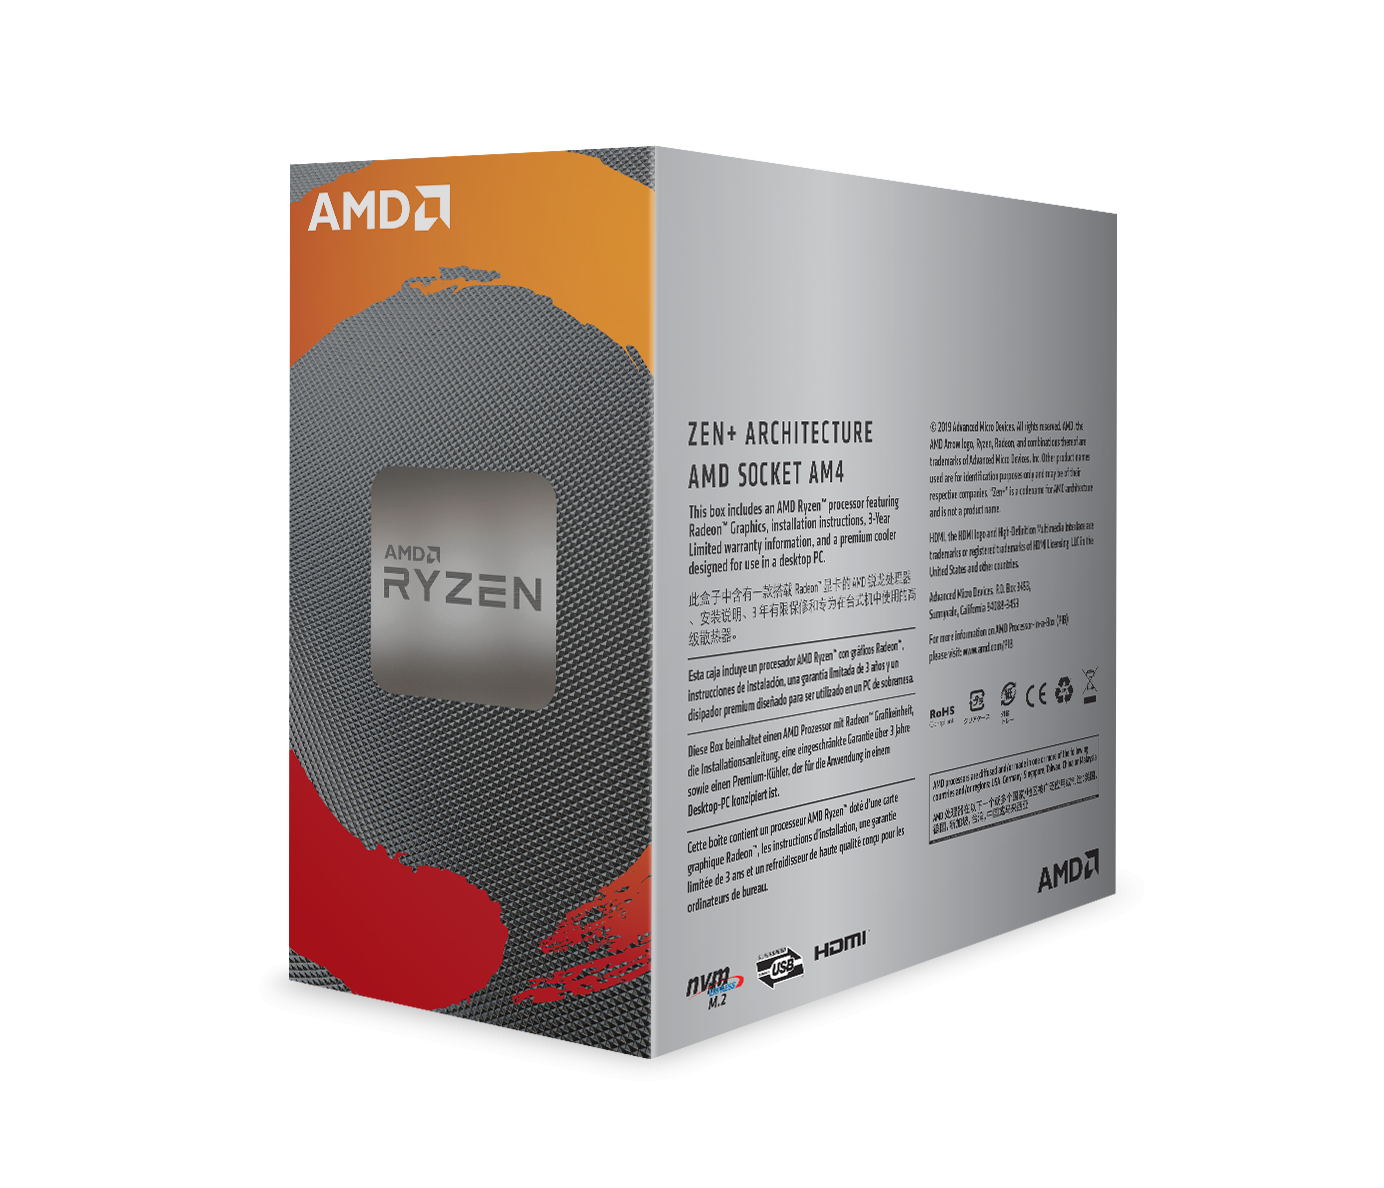 Процесор AMD RYZEN 3 3200G 4-Core 3.6 GHz (4.0 GHz Turbo) 6MB/65W/AM4/BOX-3